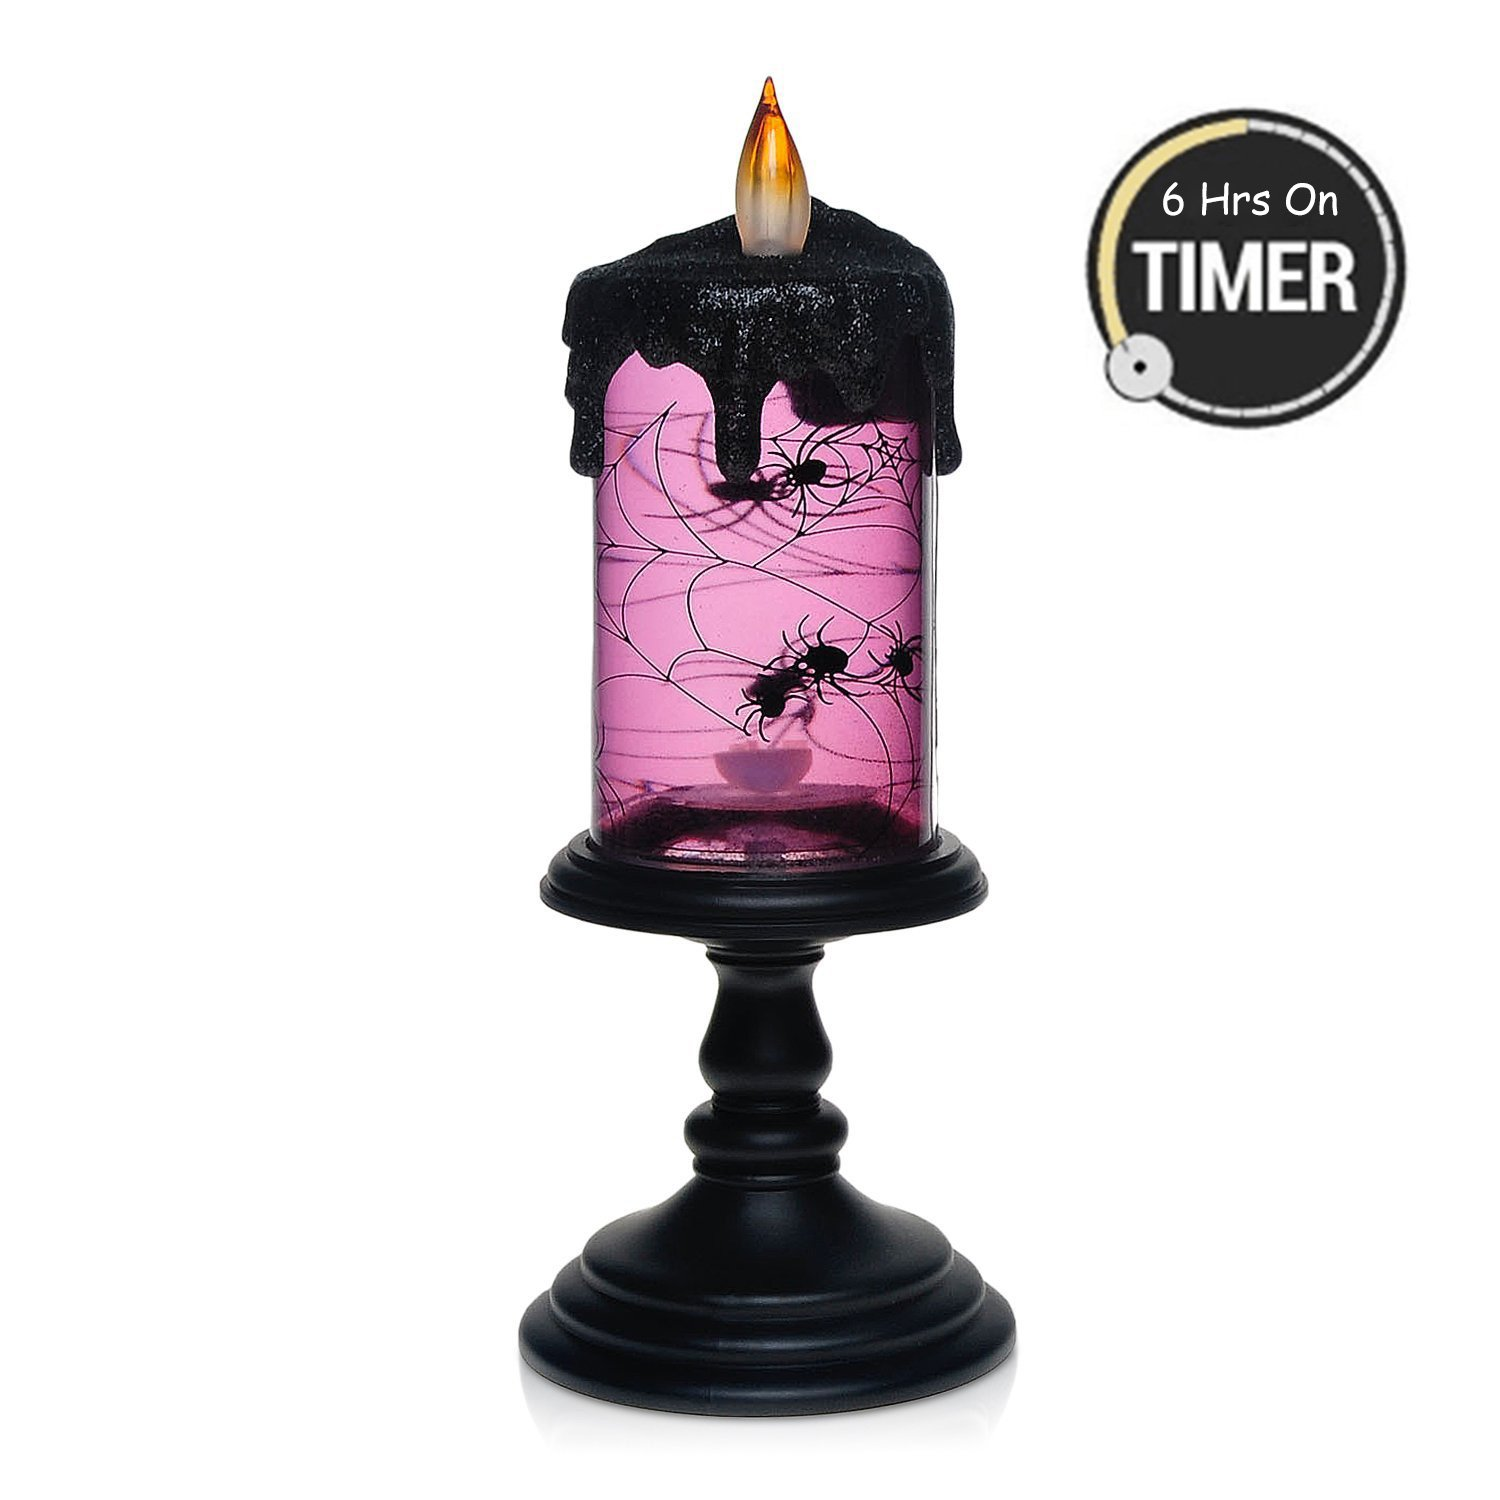 Halloween Spider Tornado LED Lighting Flameless Candle with Timer, Battery Operated Table Centerpiece for Home and Party